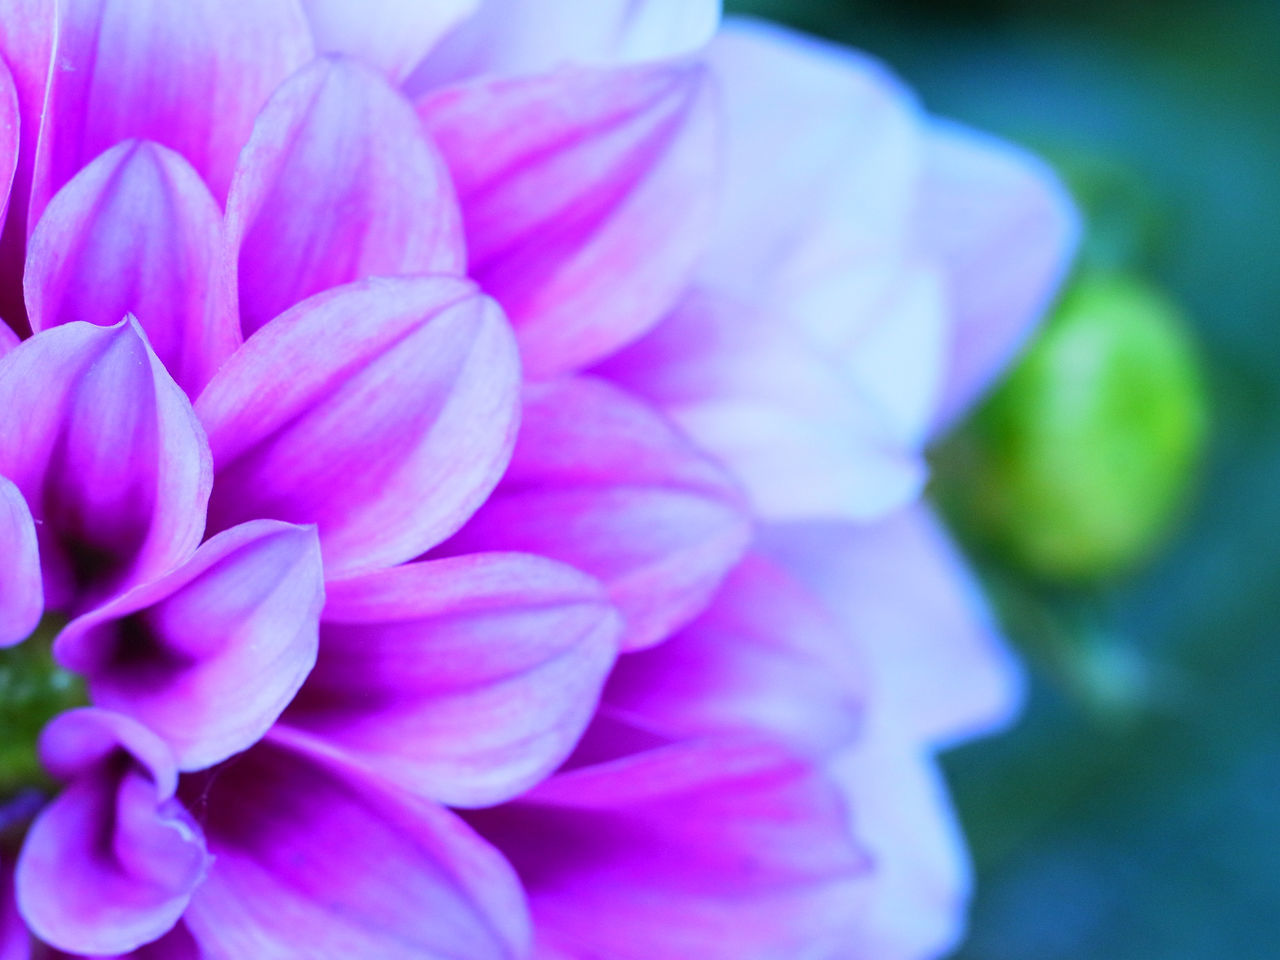 flower, flowering plant, petal, plant, freshness, close-up, beauty in nature, vulnerability, fragility, flower head, inflorescence, growth, pink color, no people, nature, day, focus on foreground, selective focus, outdoors, purple, bunch of flowers